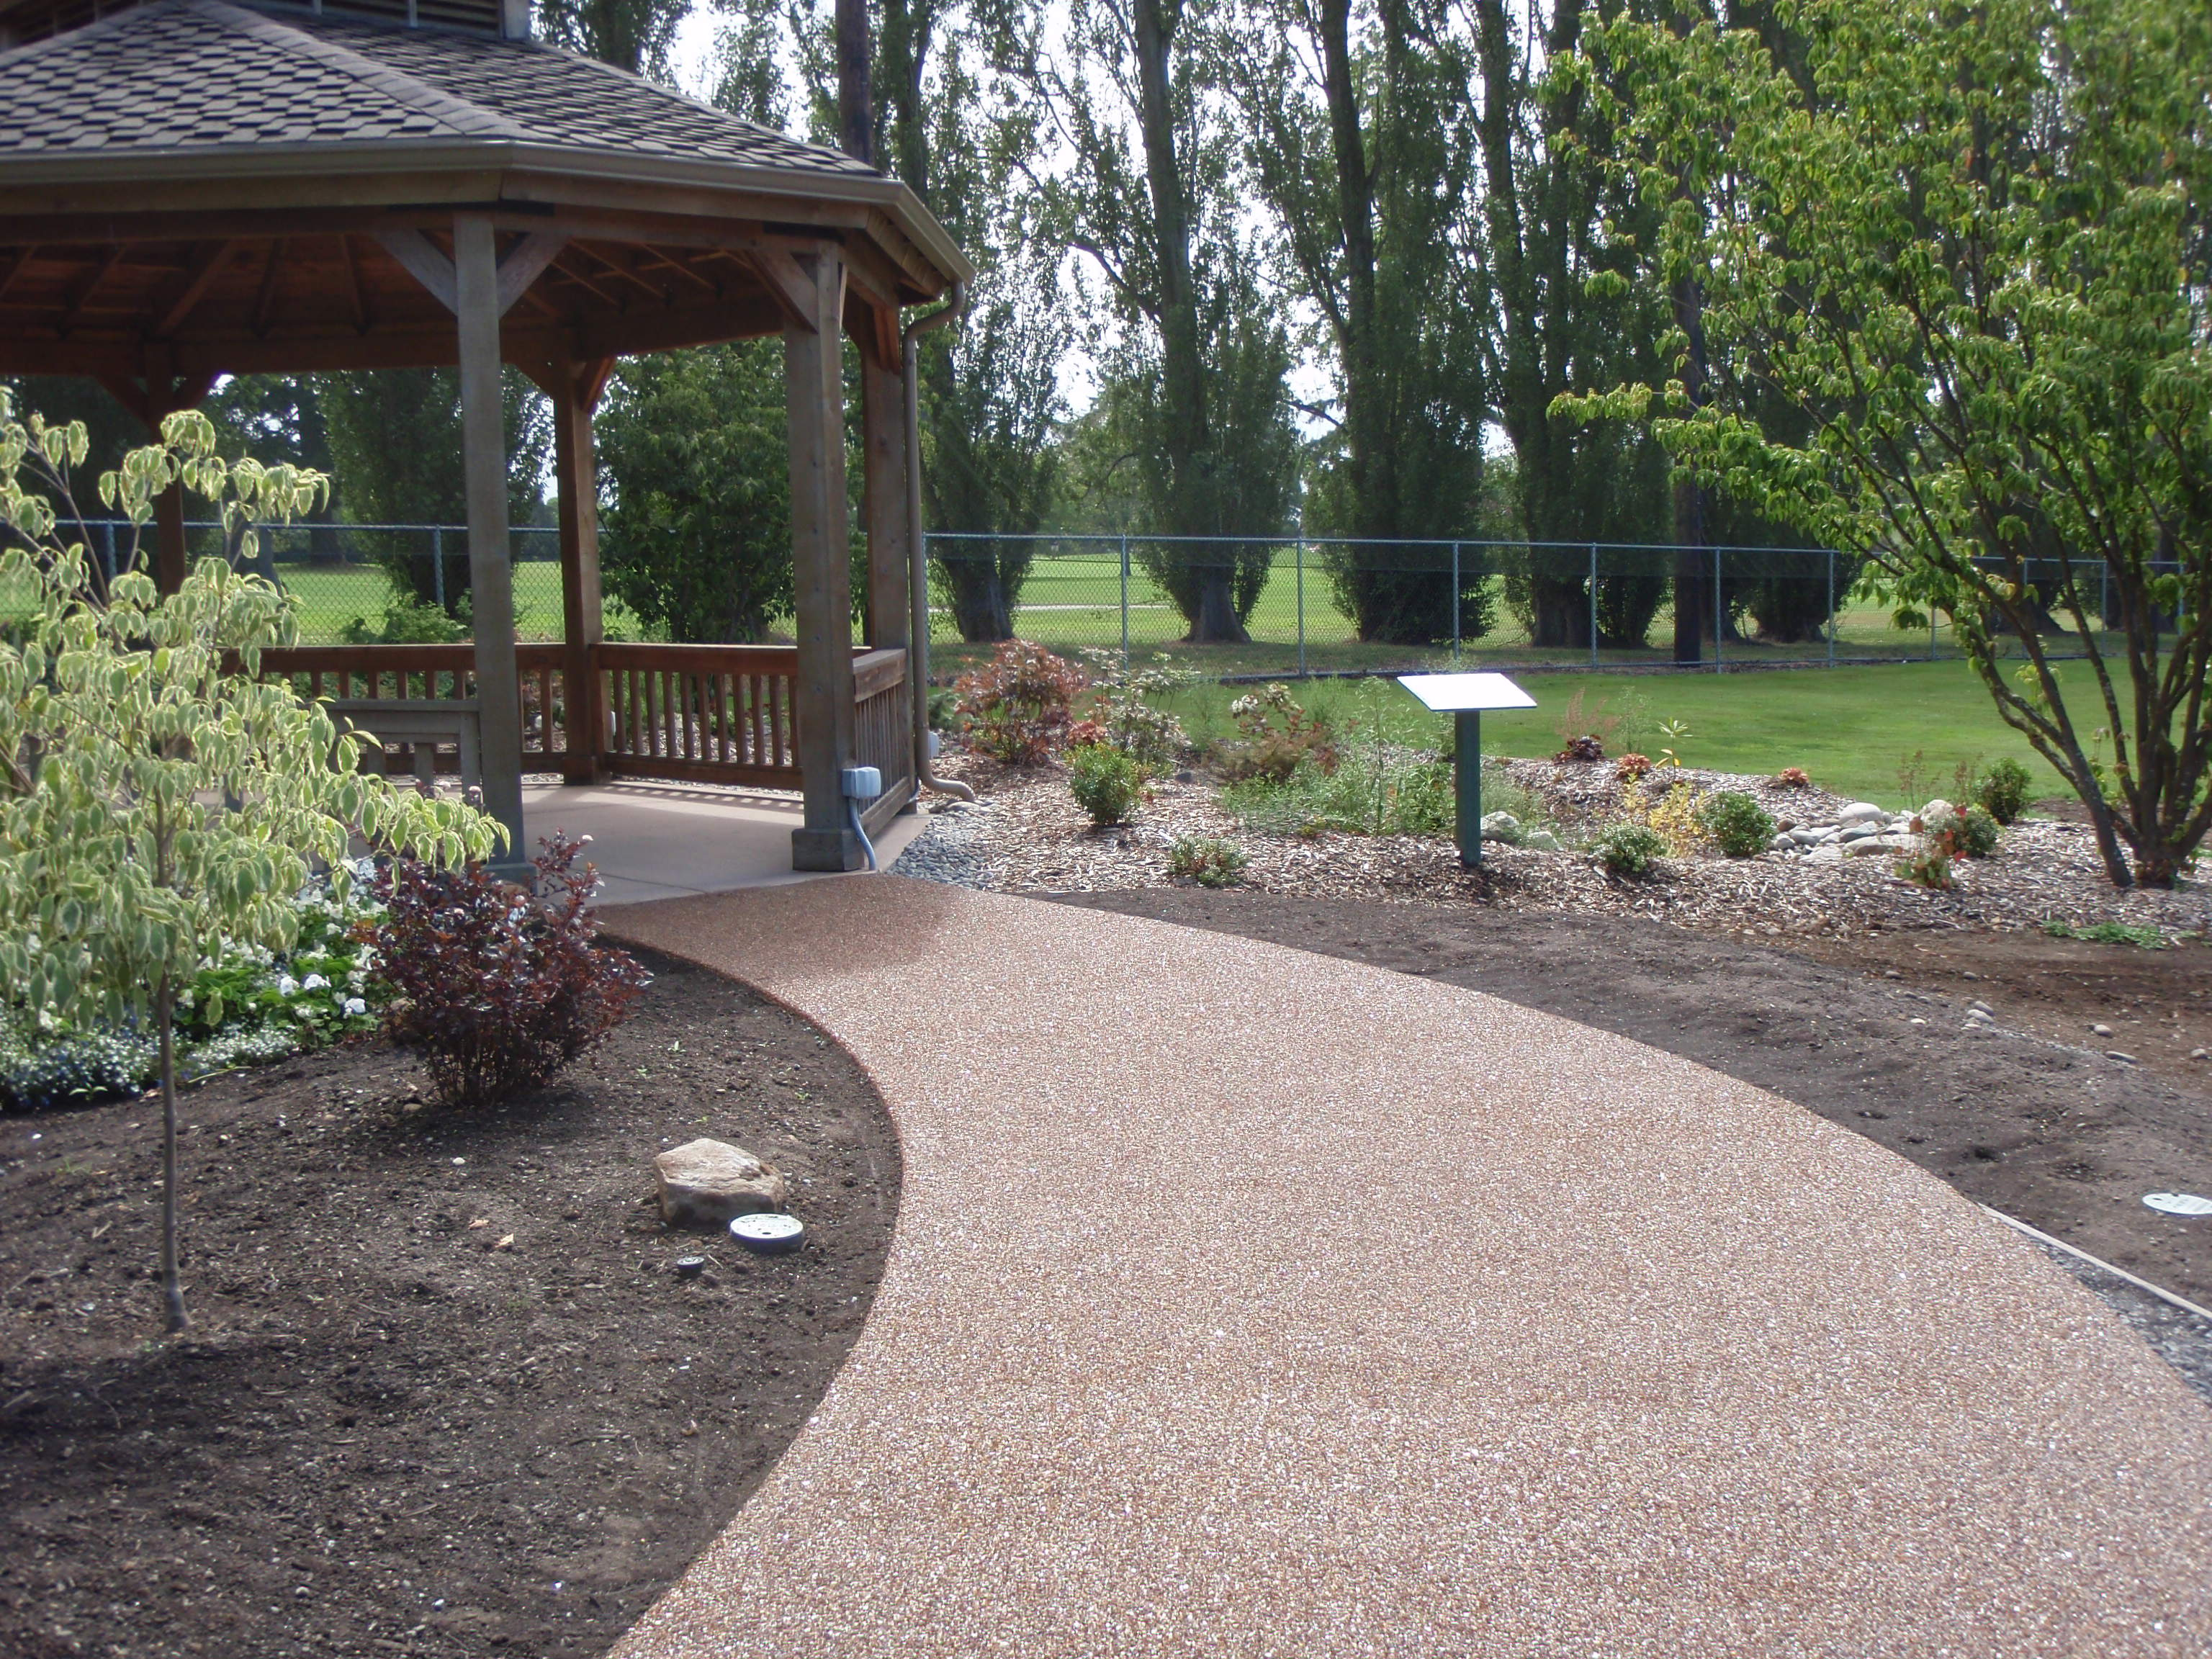 Filterpave Is An Environmentally Friendly Porous Paving